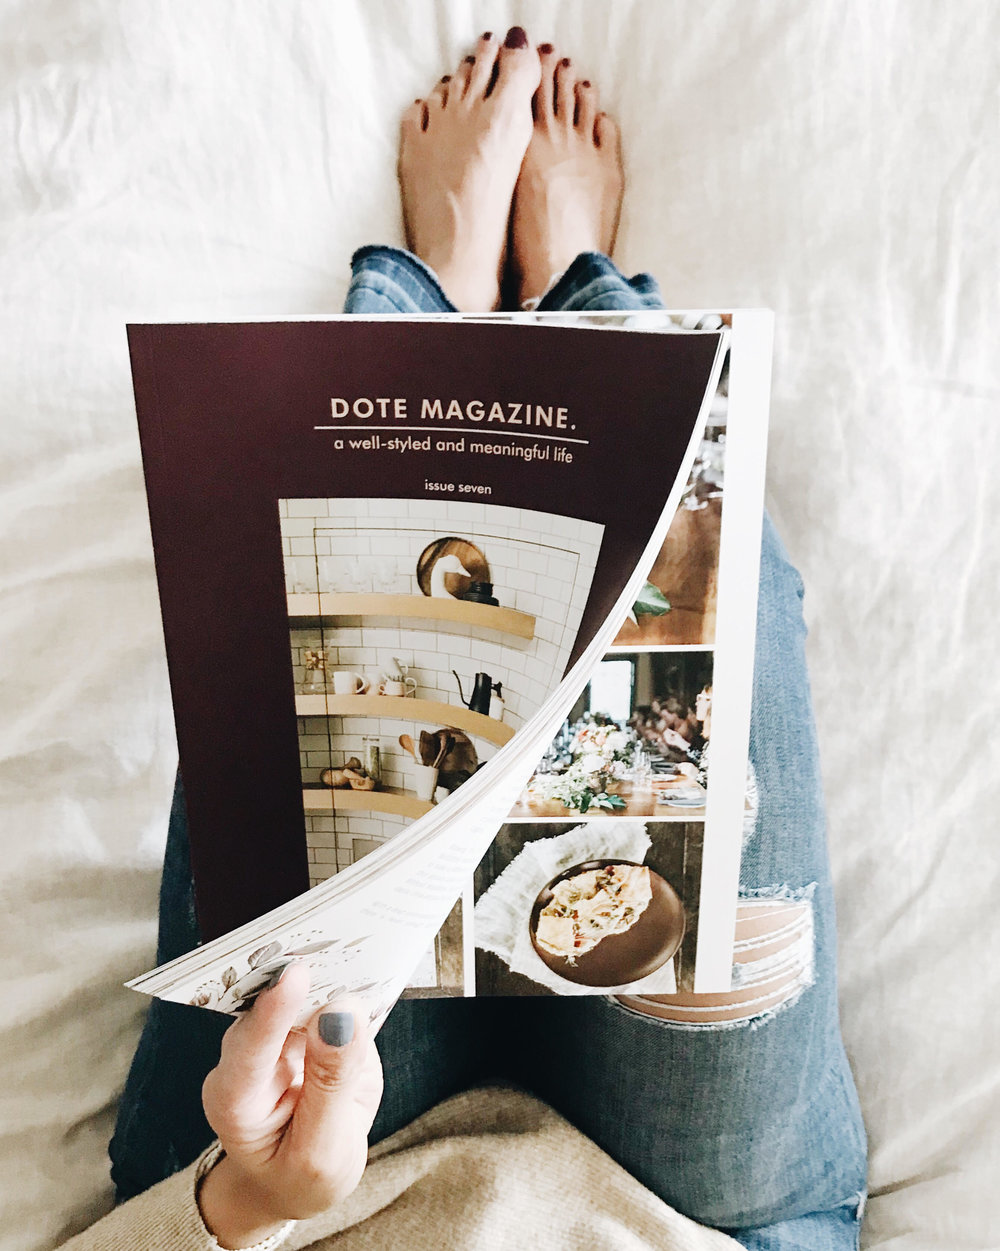 Dote Magazine, Weekend Reading, Nyla Free Designs Inc.